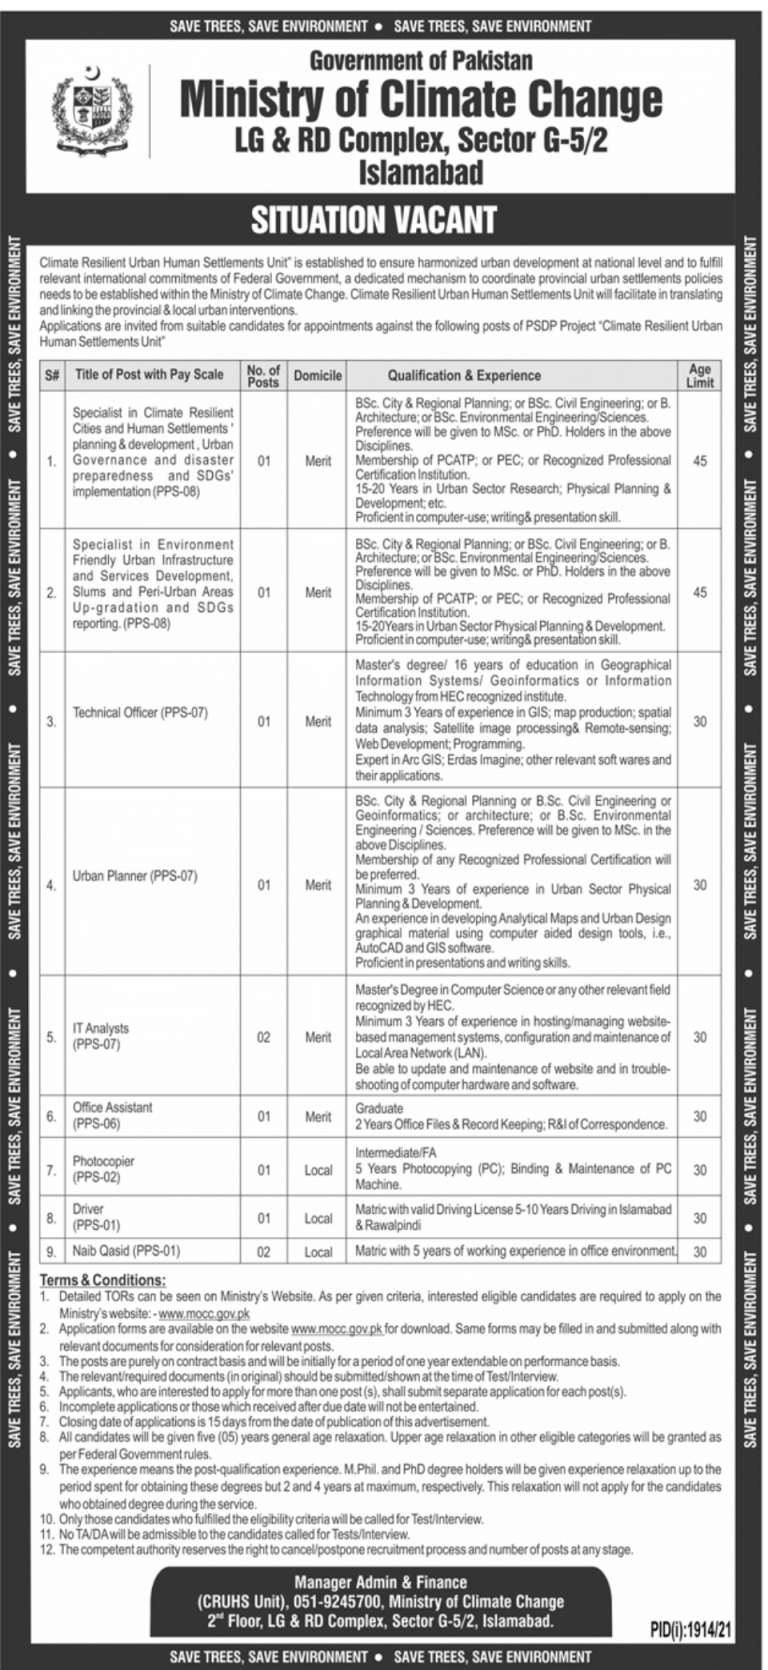 Pakistan Govt Jobs 2021 At Ministry of Climate Change MOCC